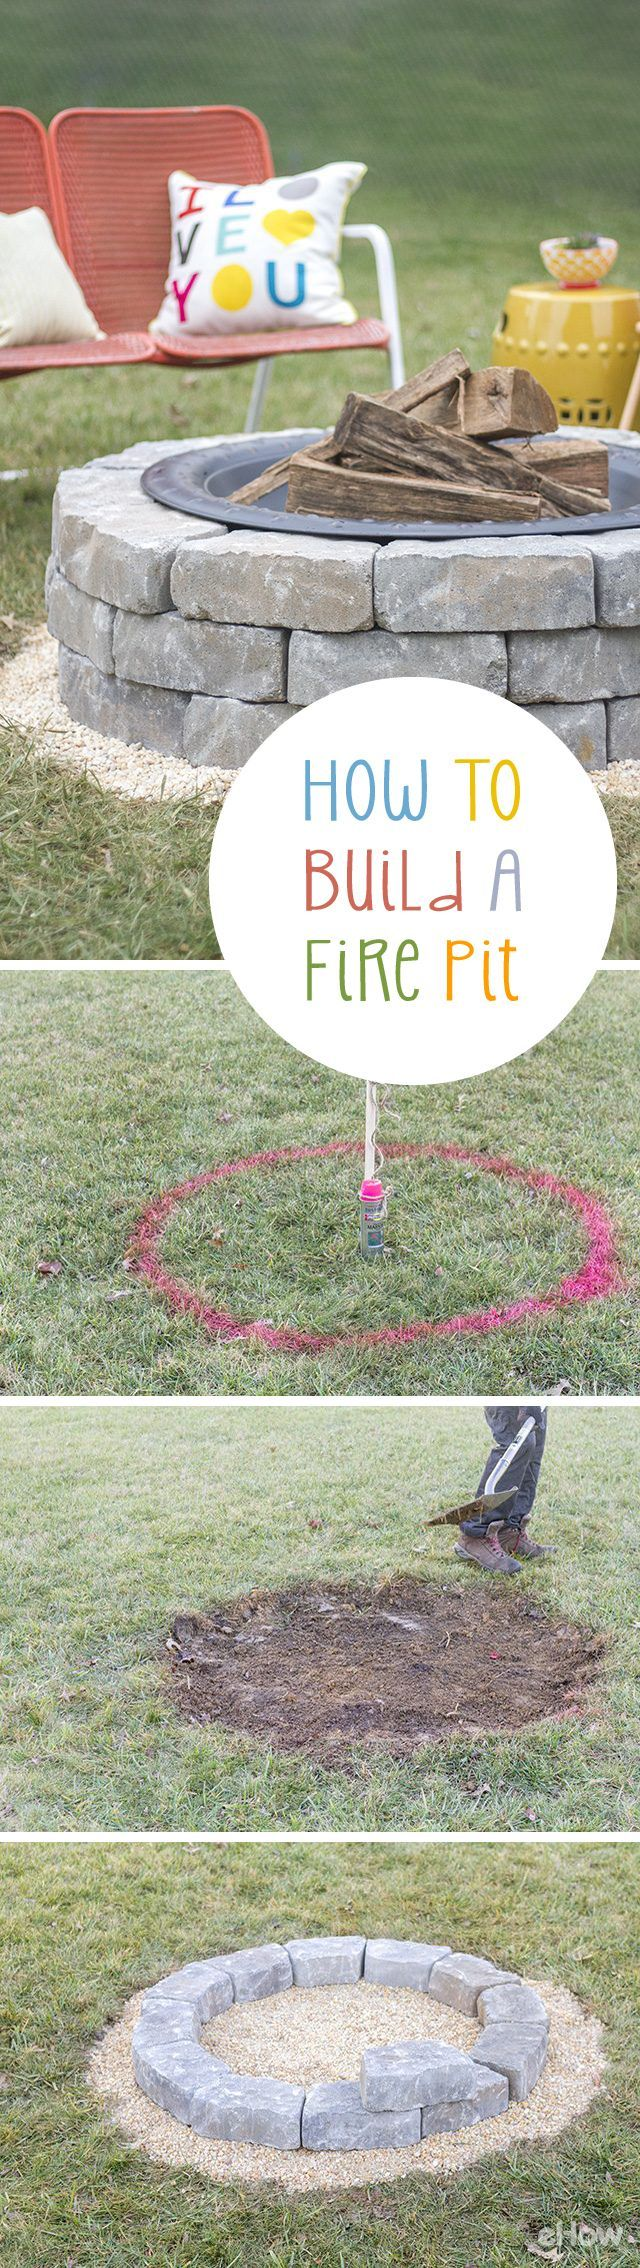 how to build a fire pit with landscape wall stones backyard